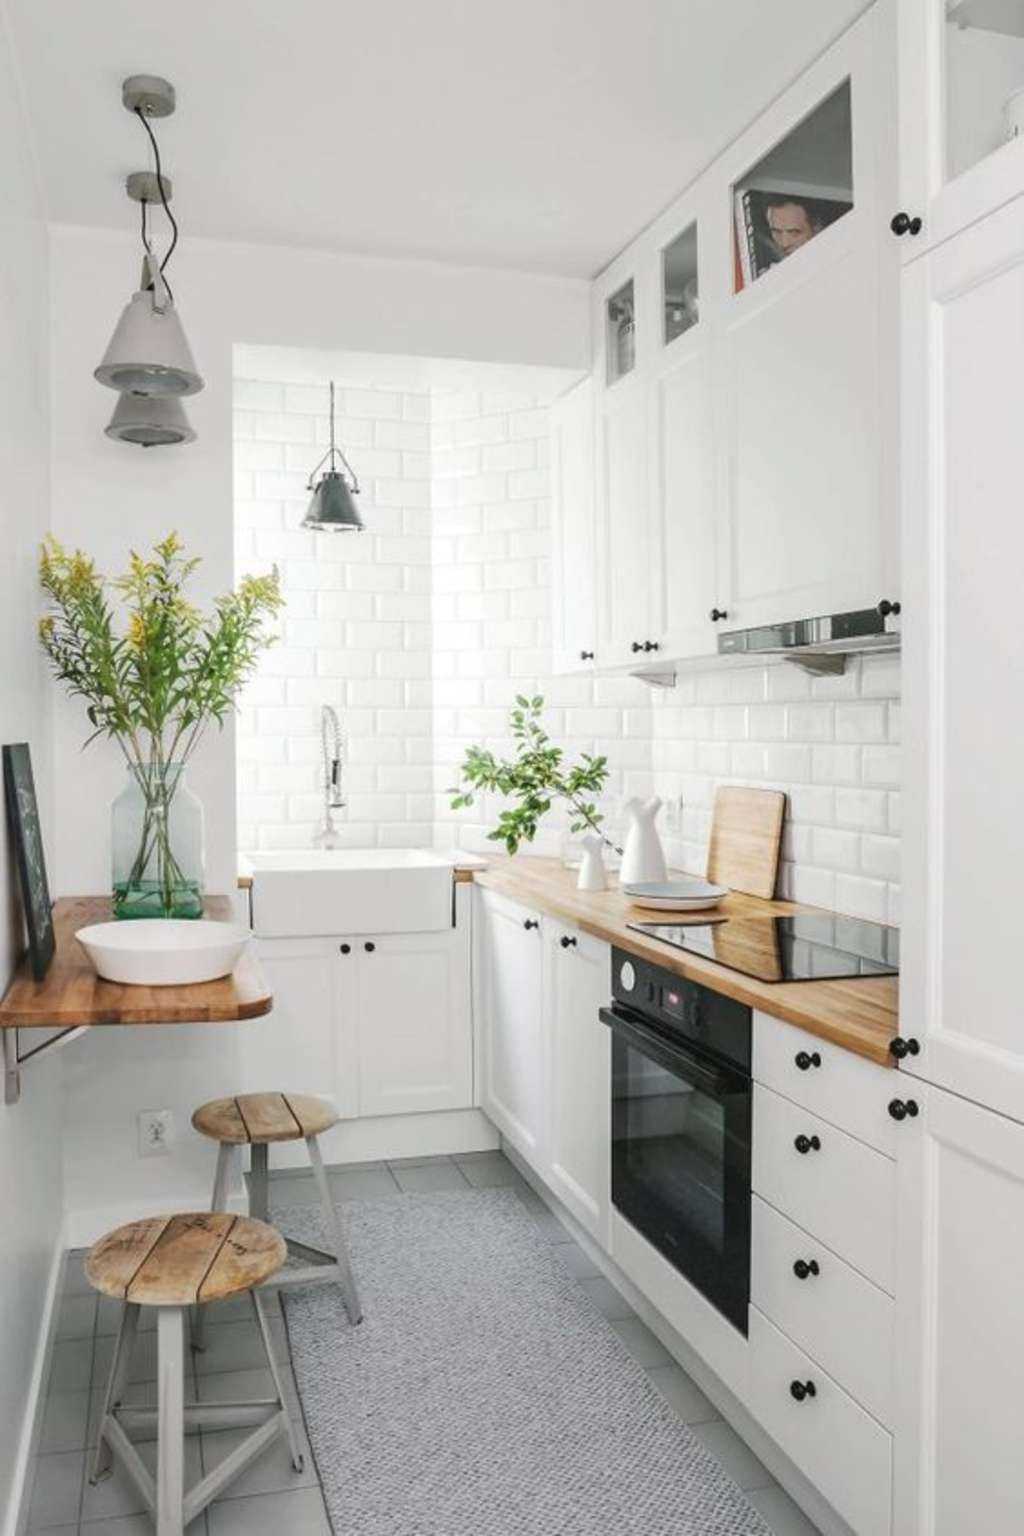 10 Of The Smartest Small Kitchens We Ve Ever Seen Small Kitchen Decor Galley Kitchen Design Kitchen Design Small